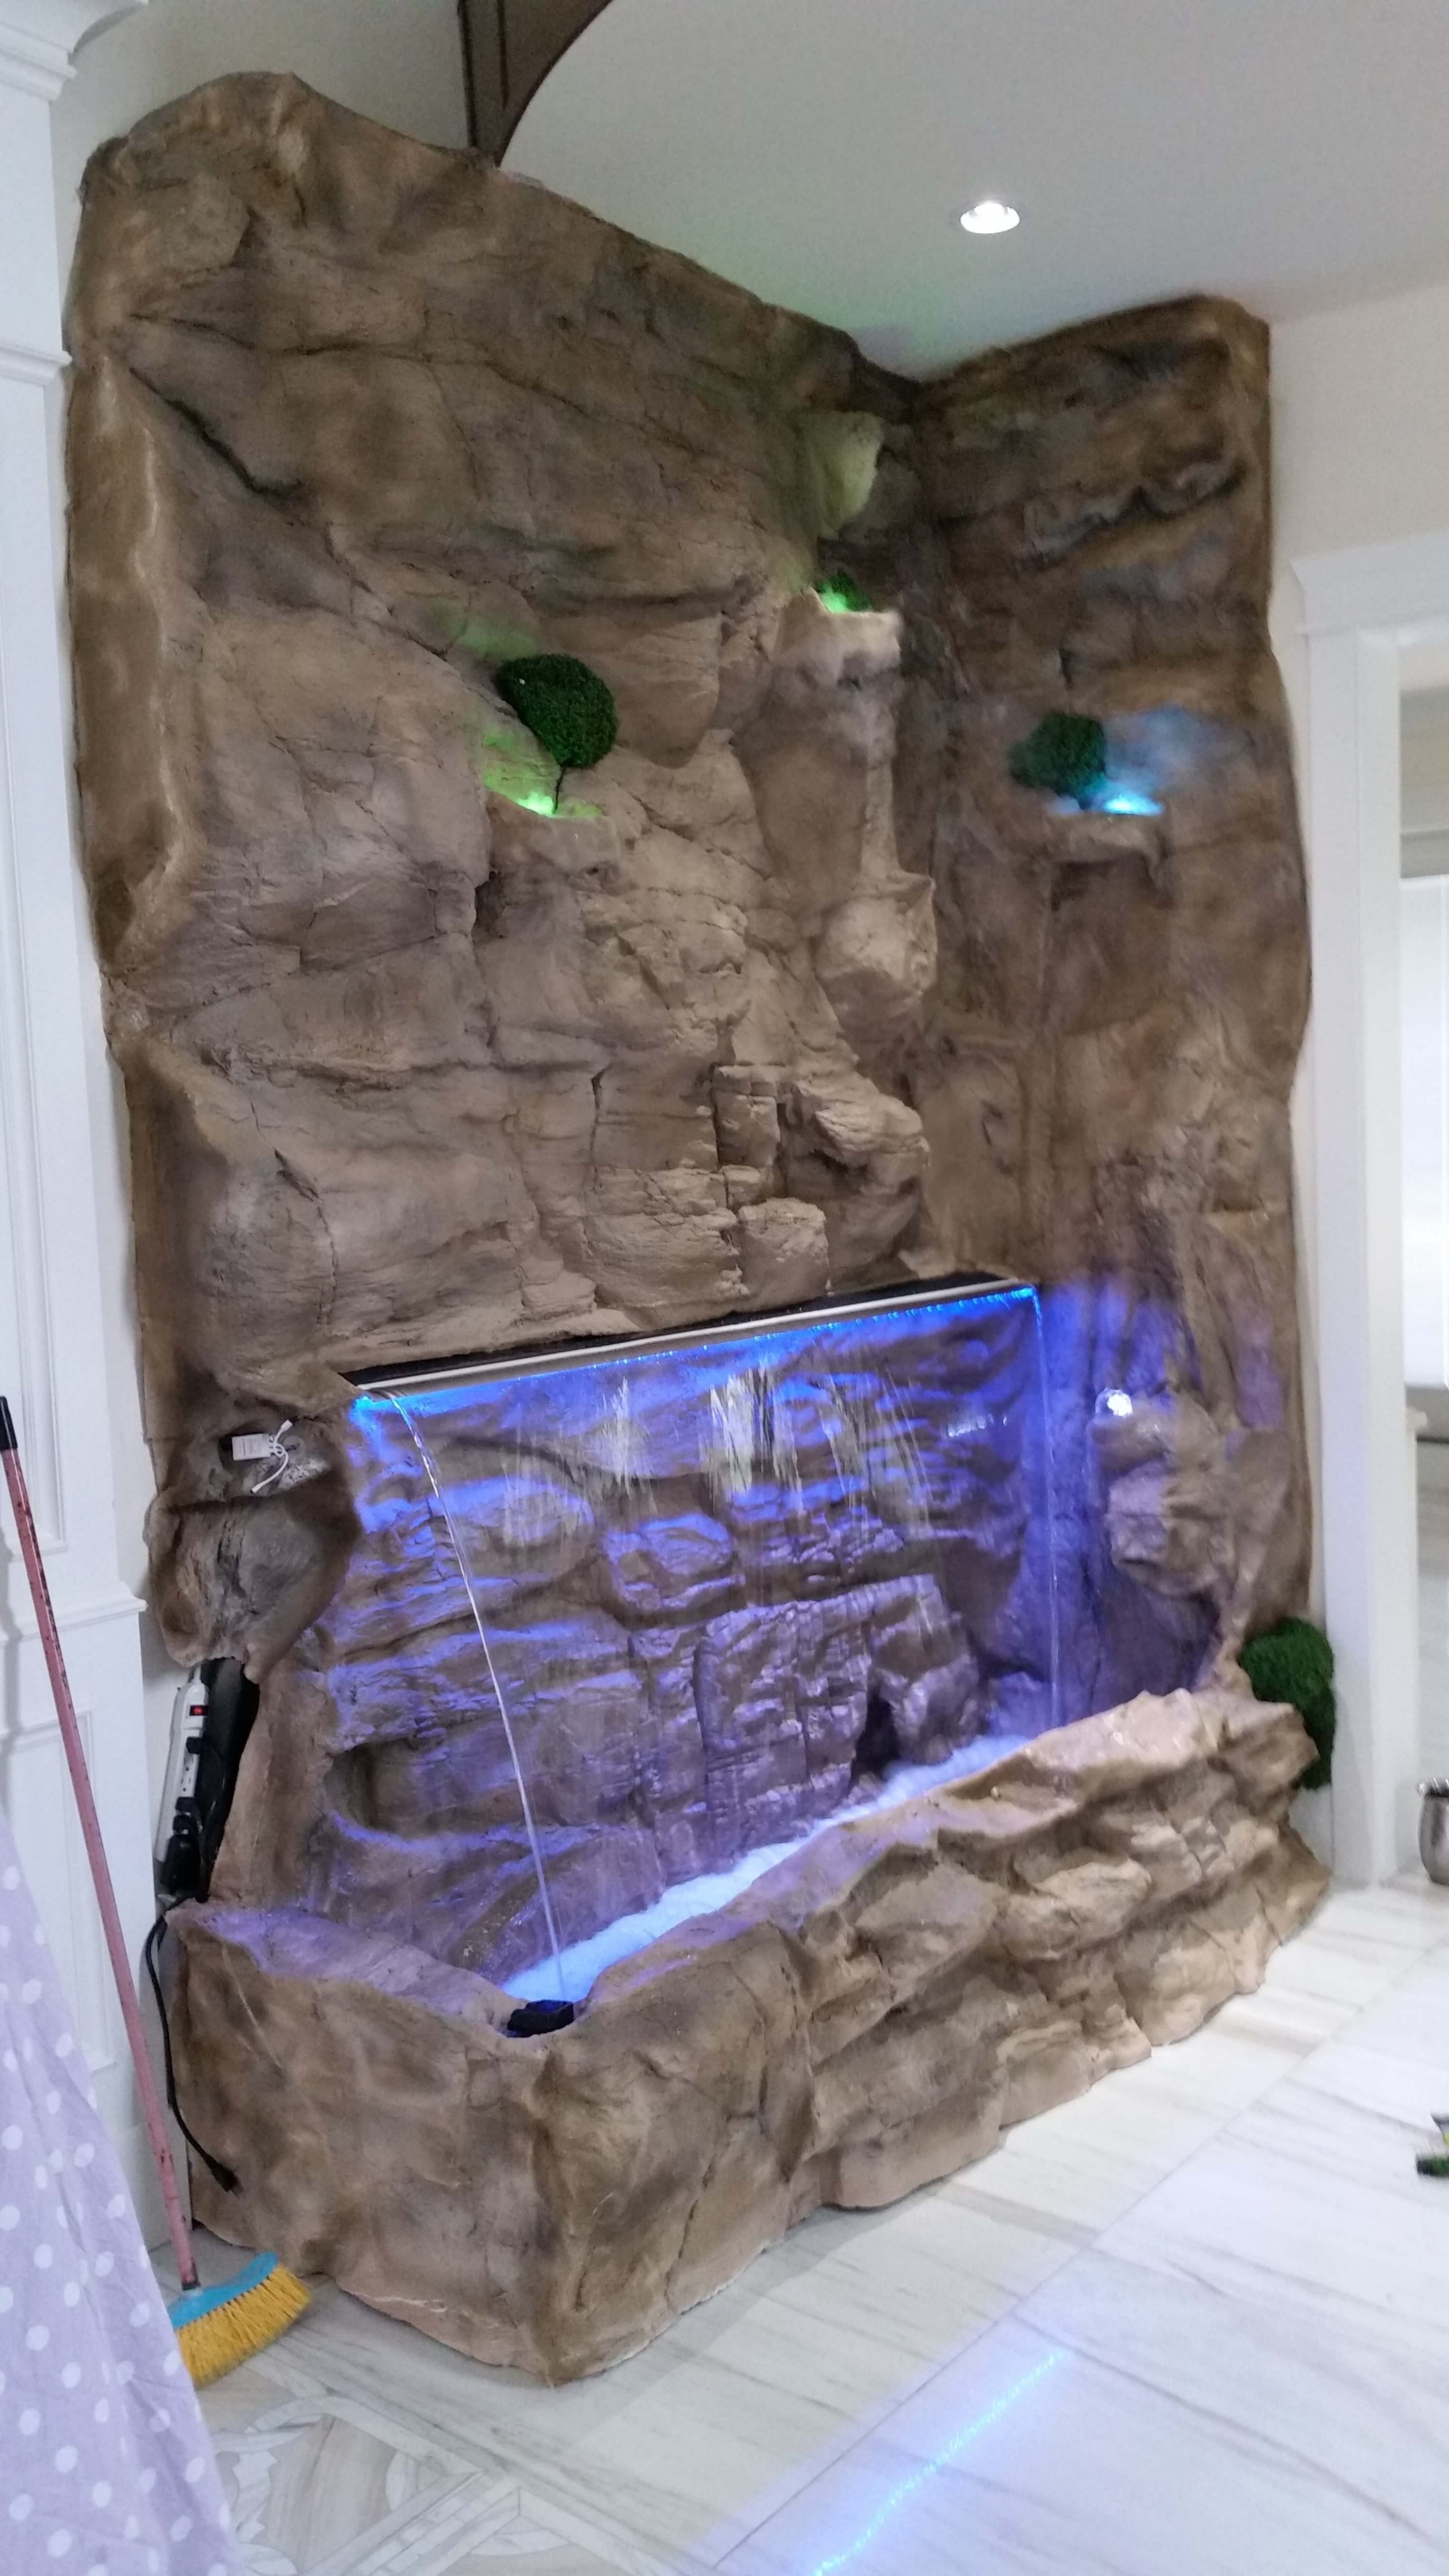 Outdoor And Patio: Rock Wall Fountains Indoor Ares With Lighting In Well Liked Outdoor Rock Wall Lighting (View 9 of 20)